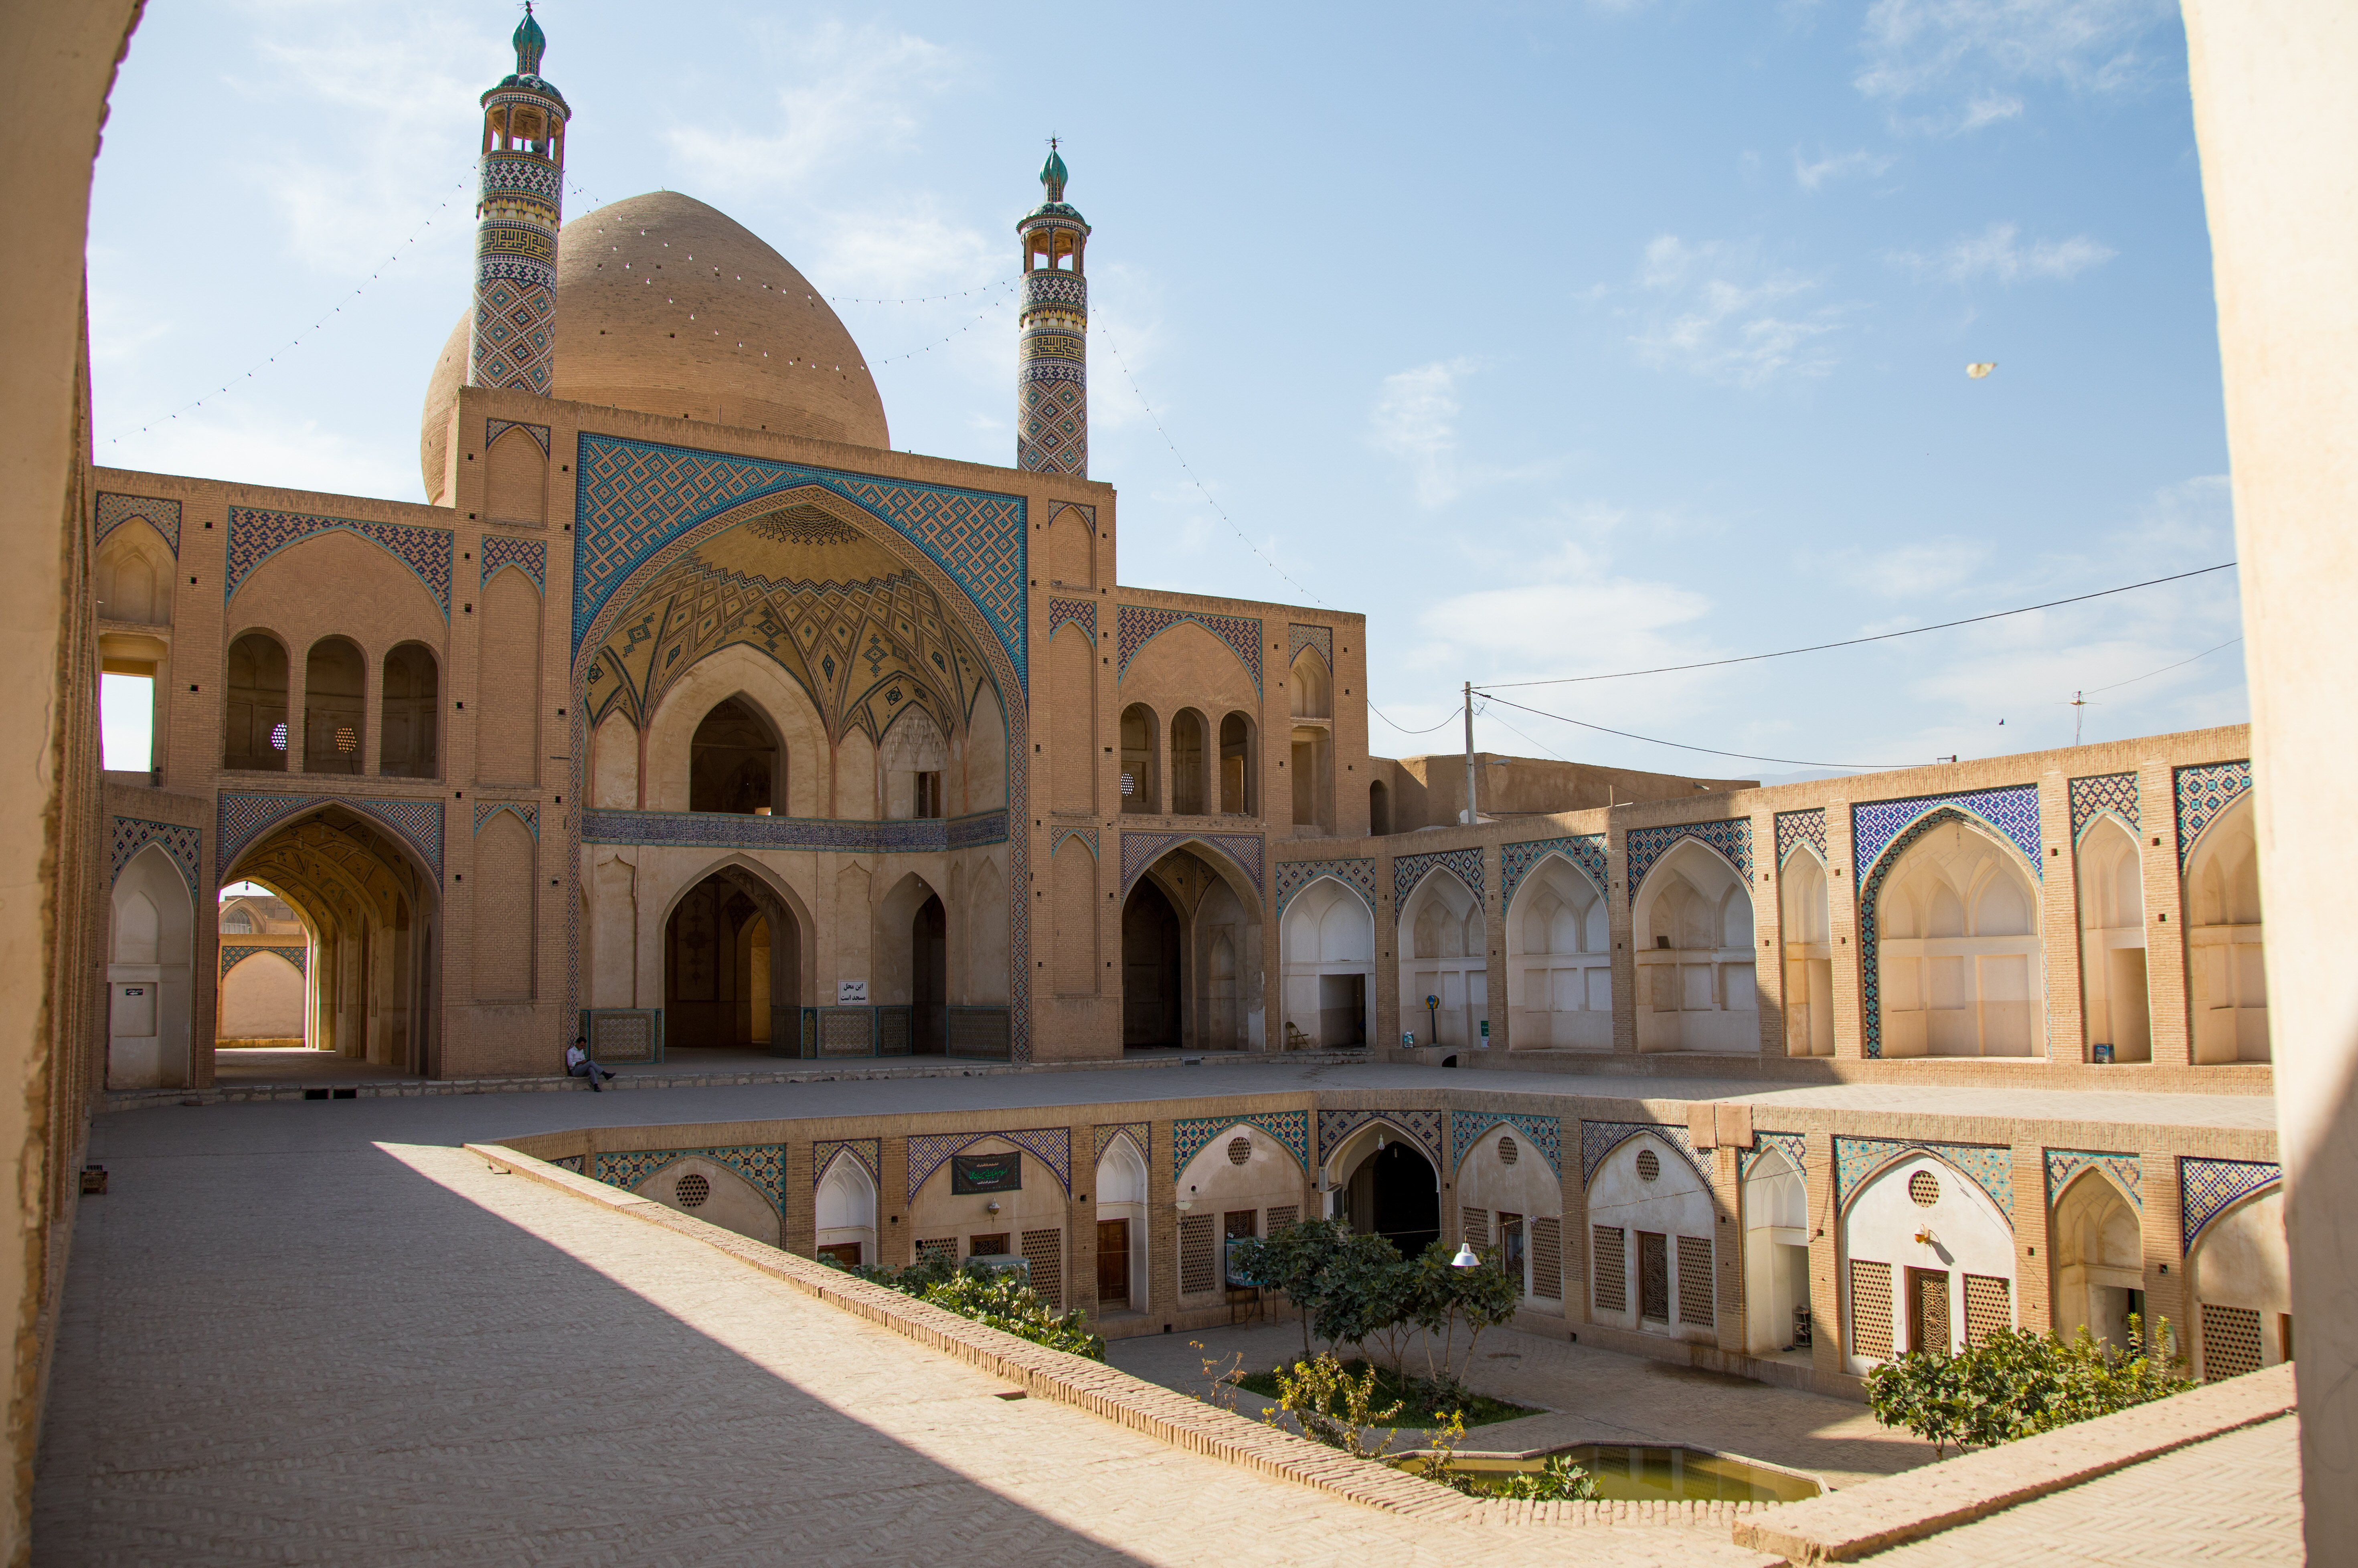 Architectural Treasures of the Middle East